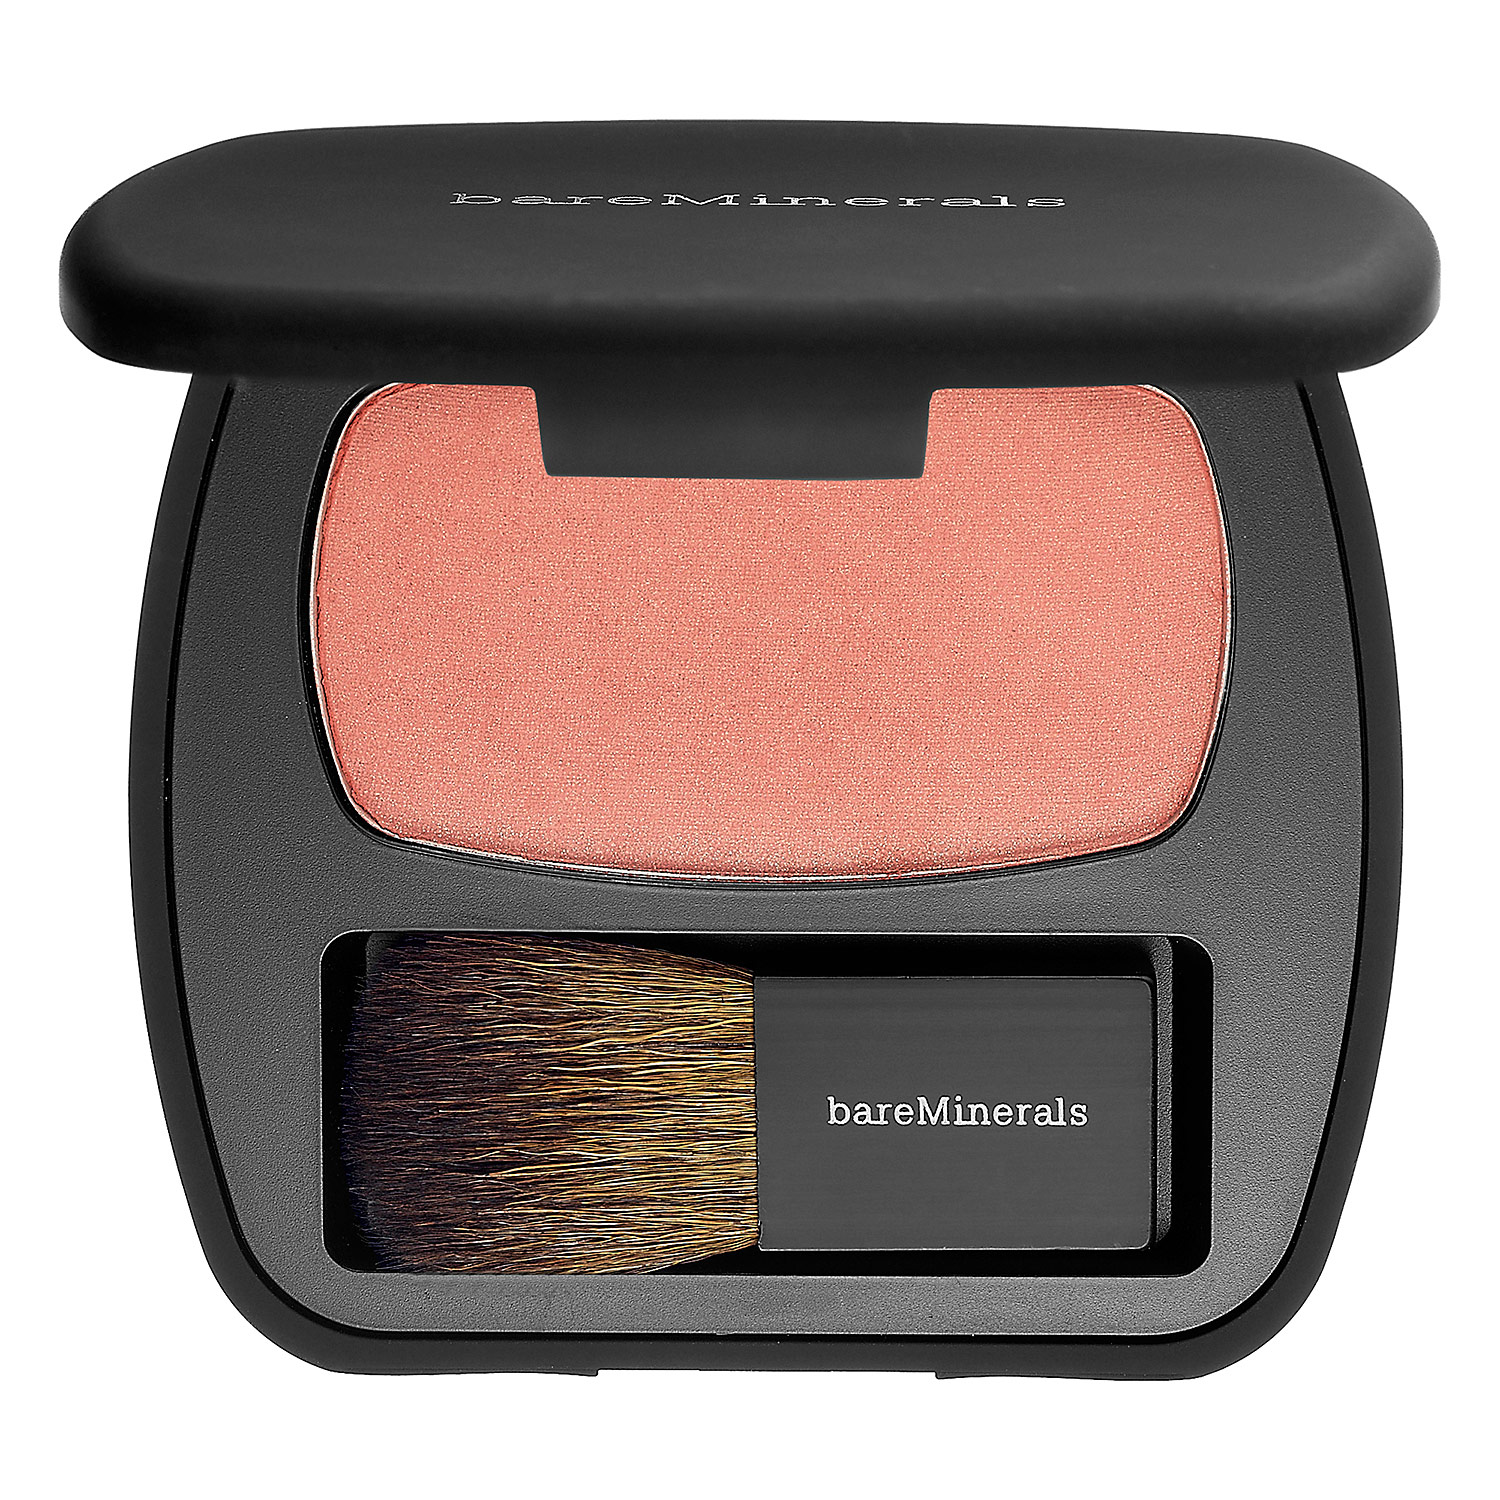 bareMinerals The Aphrodisiac READY Blush Review & Swatches